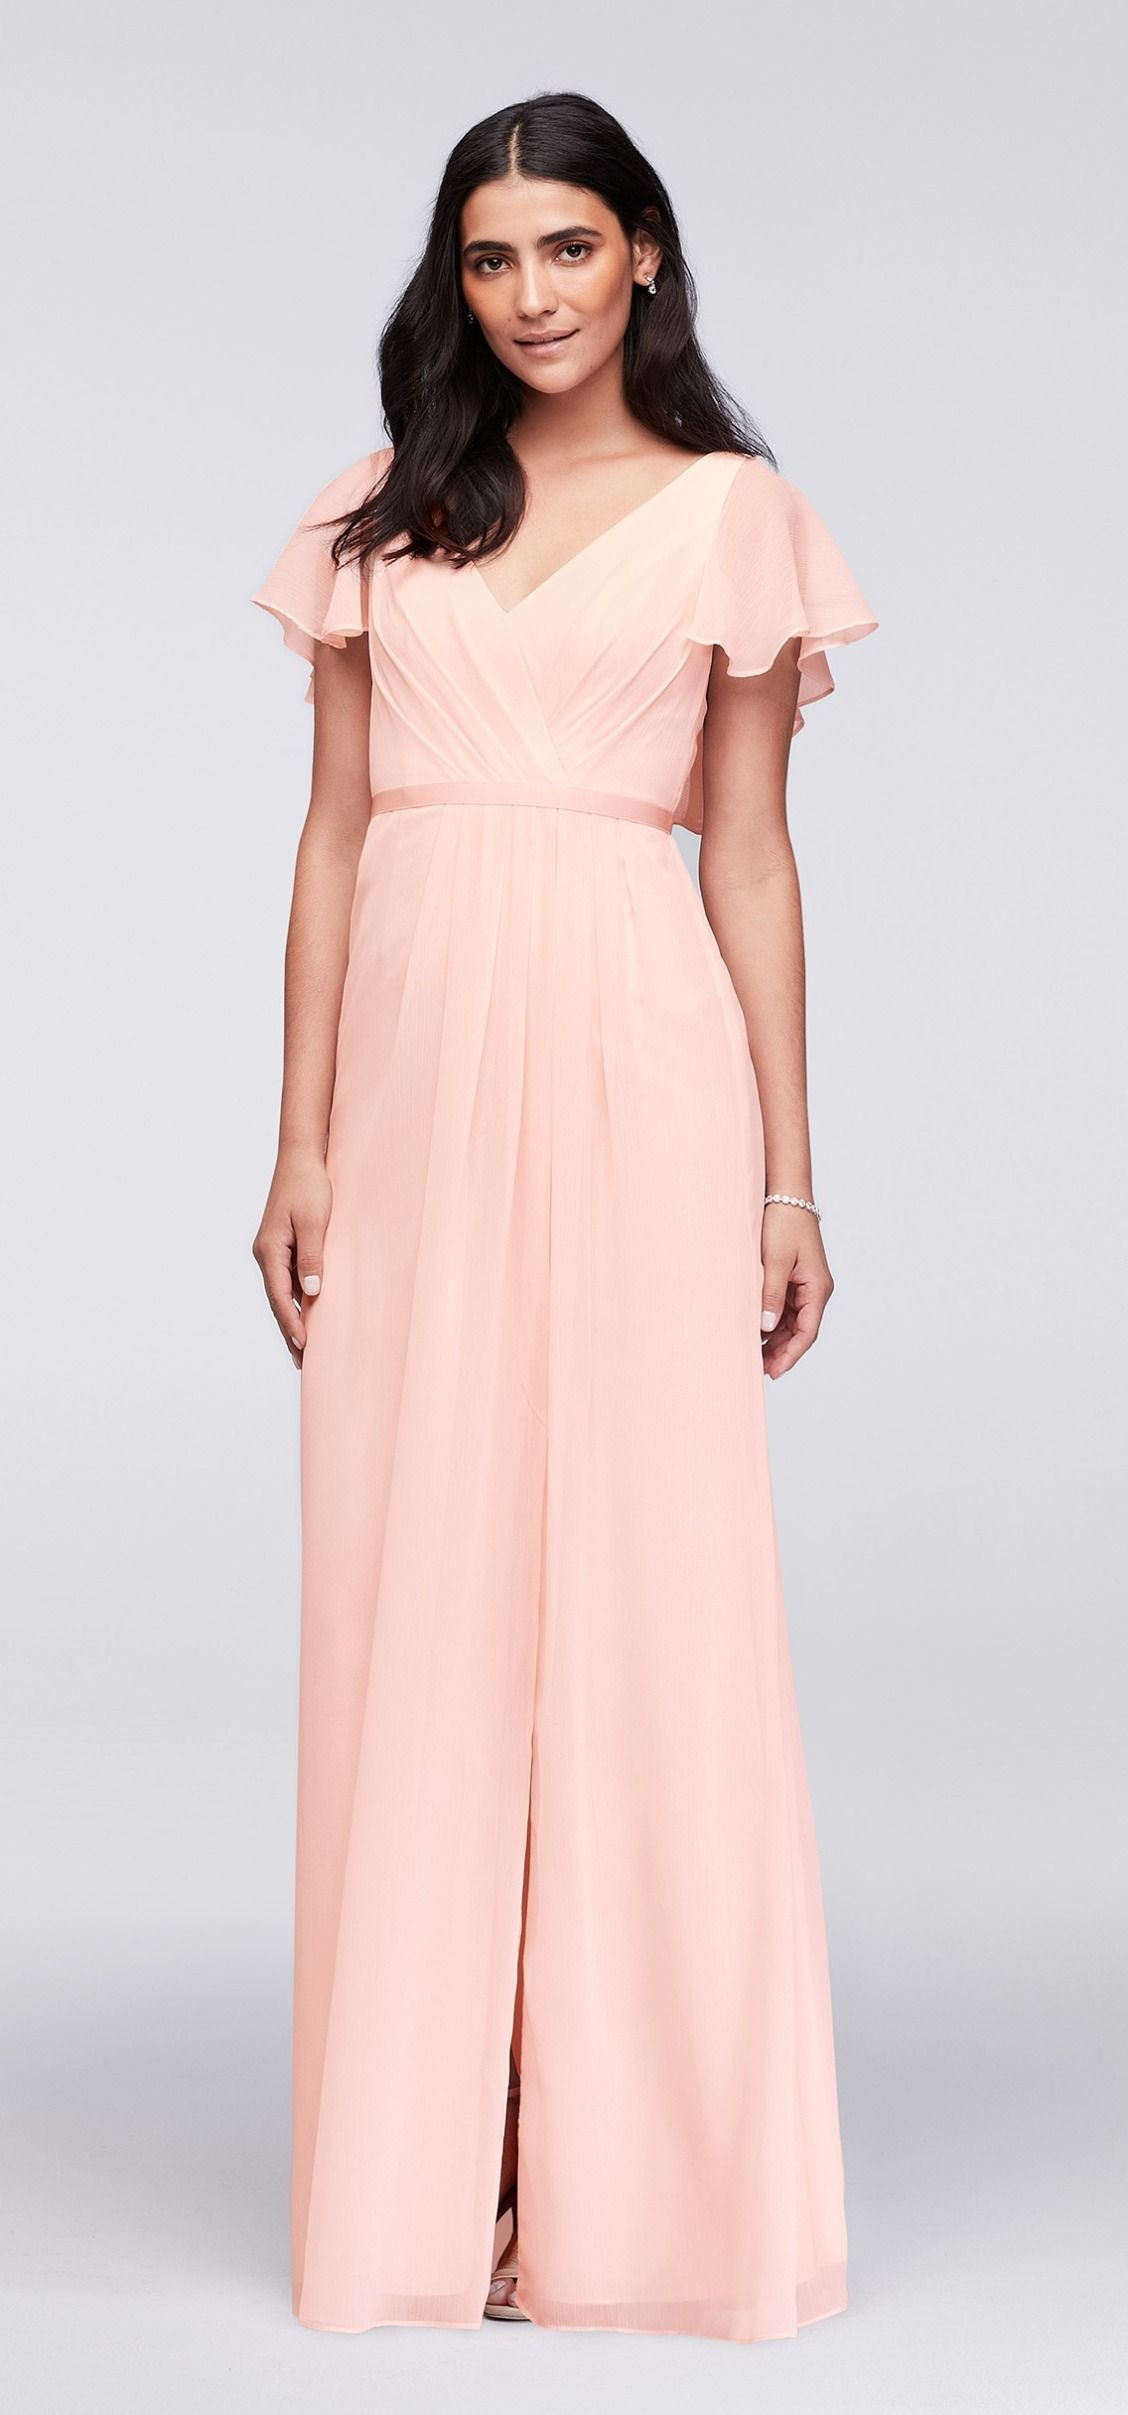 A simple bridesmaid dress for an intimate wedding ceremony, this ...